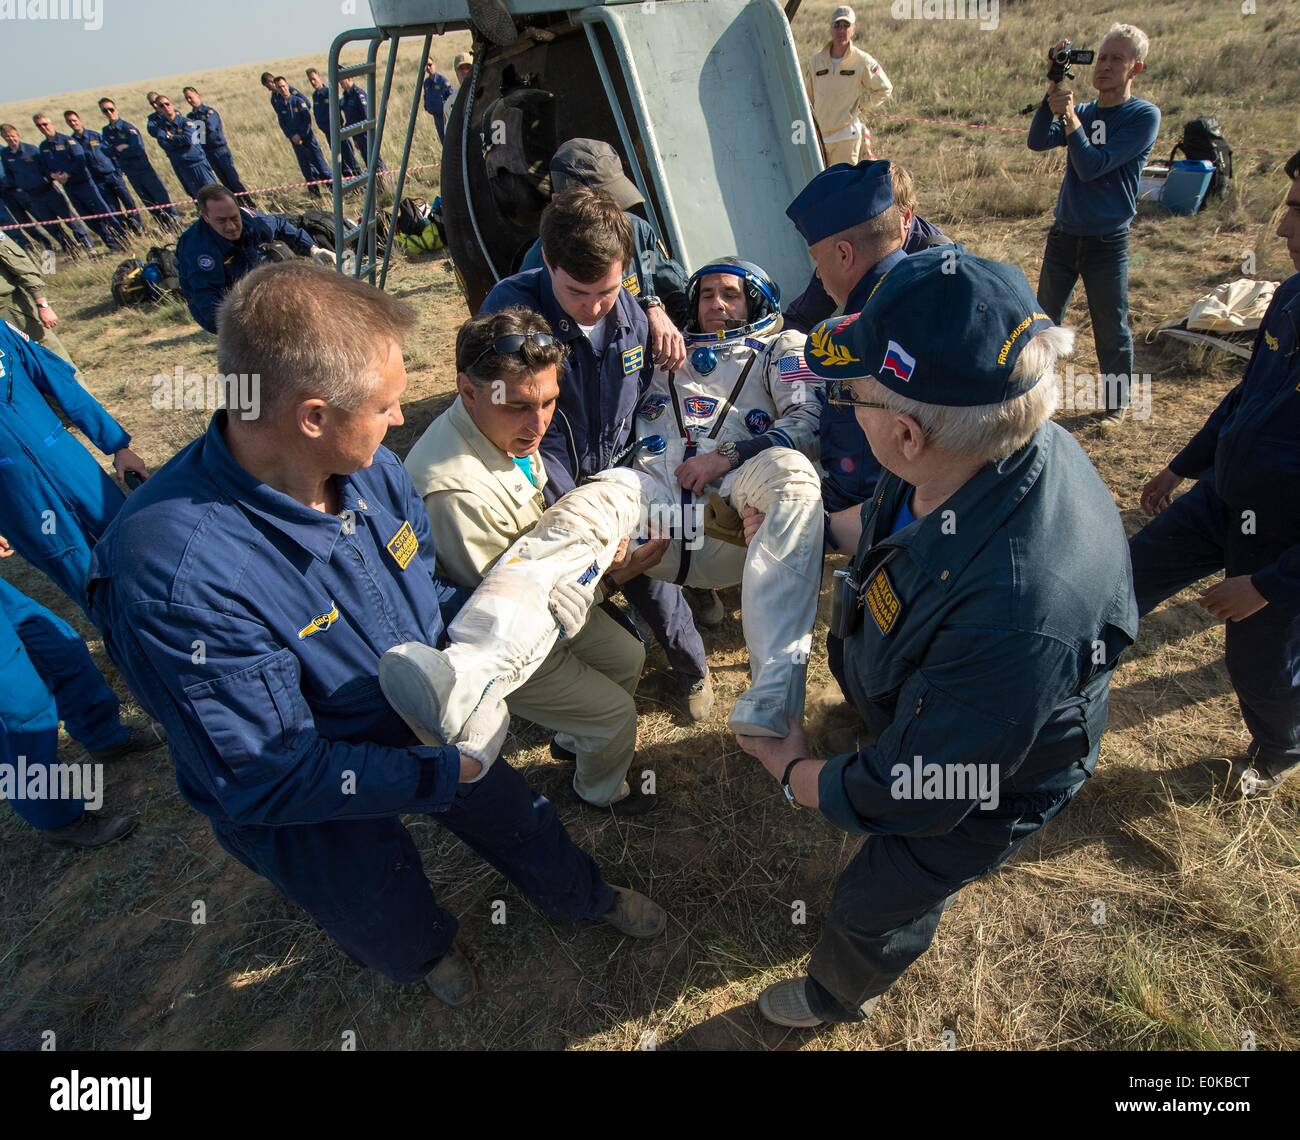 ISS Expedition 39 Flight Engineer Rick Mastracchio of NASA is carried to the medical tent just minutes after landing with fellow expedition crew members in the Soyuz TMA-11M spacecraft May 14, 2014 near the town of Zhezkazgan, Kazakhstan. Wakata, Tyurin and Mastracchio returned to Earth after more than six months onboard the International Space Station where they served as members of the Expedition 38 and 39 crews. - Stock Image